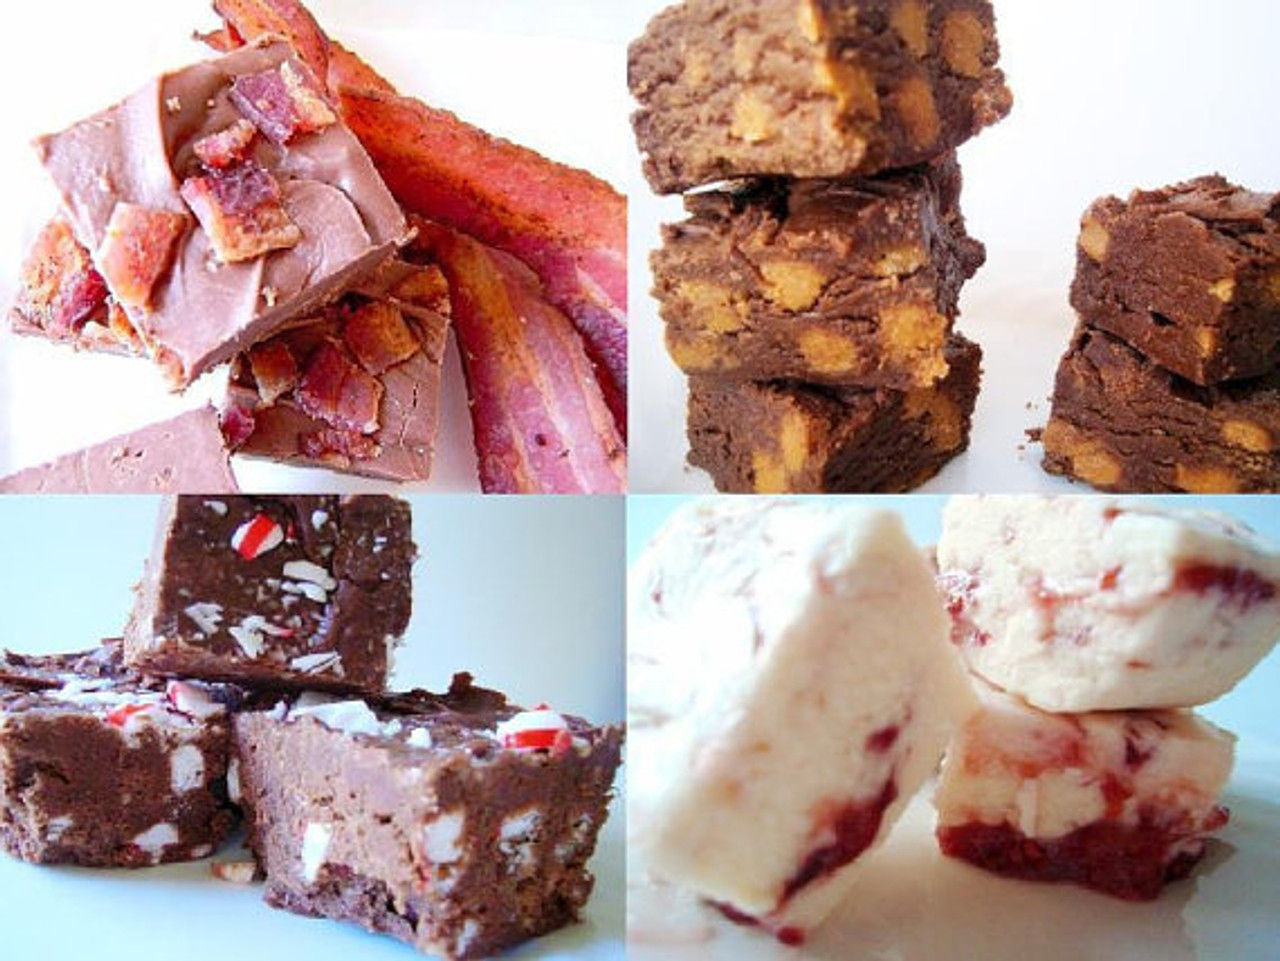 Our Gourmet Fudge Sampler - 4 Flavors of Choice